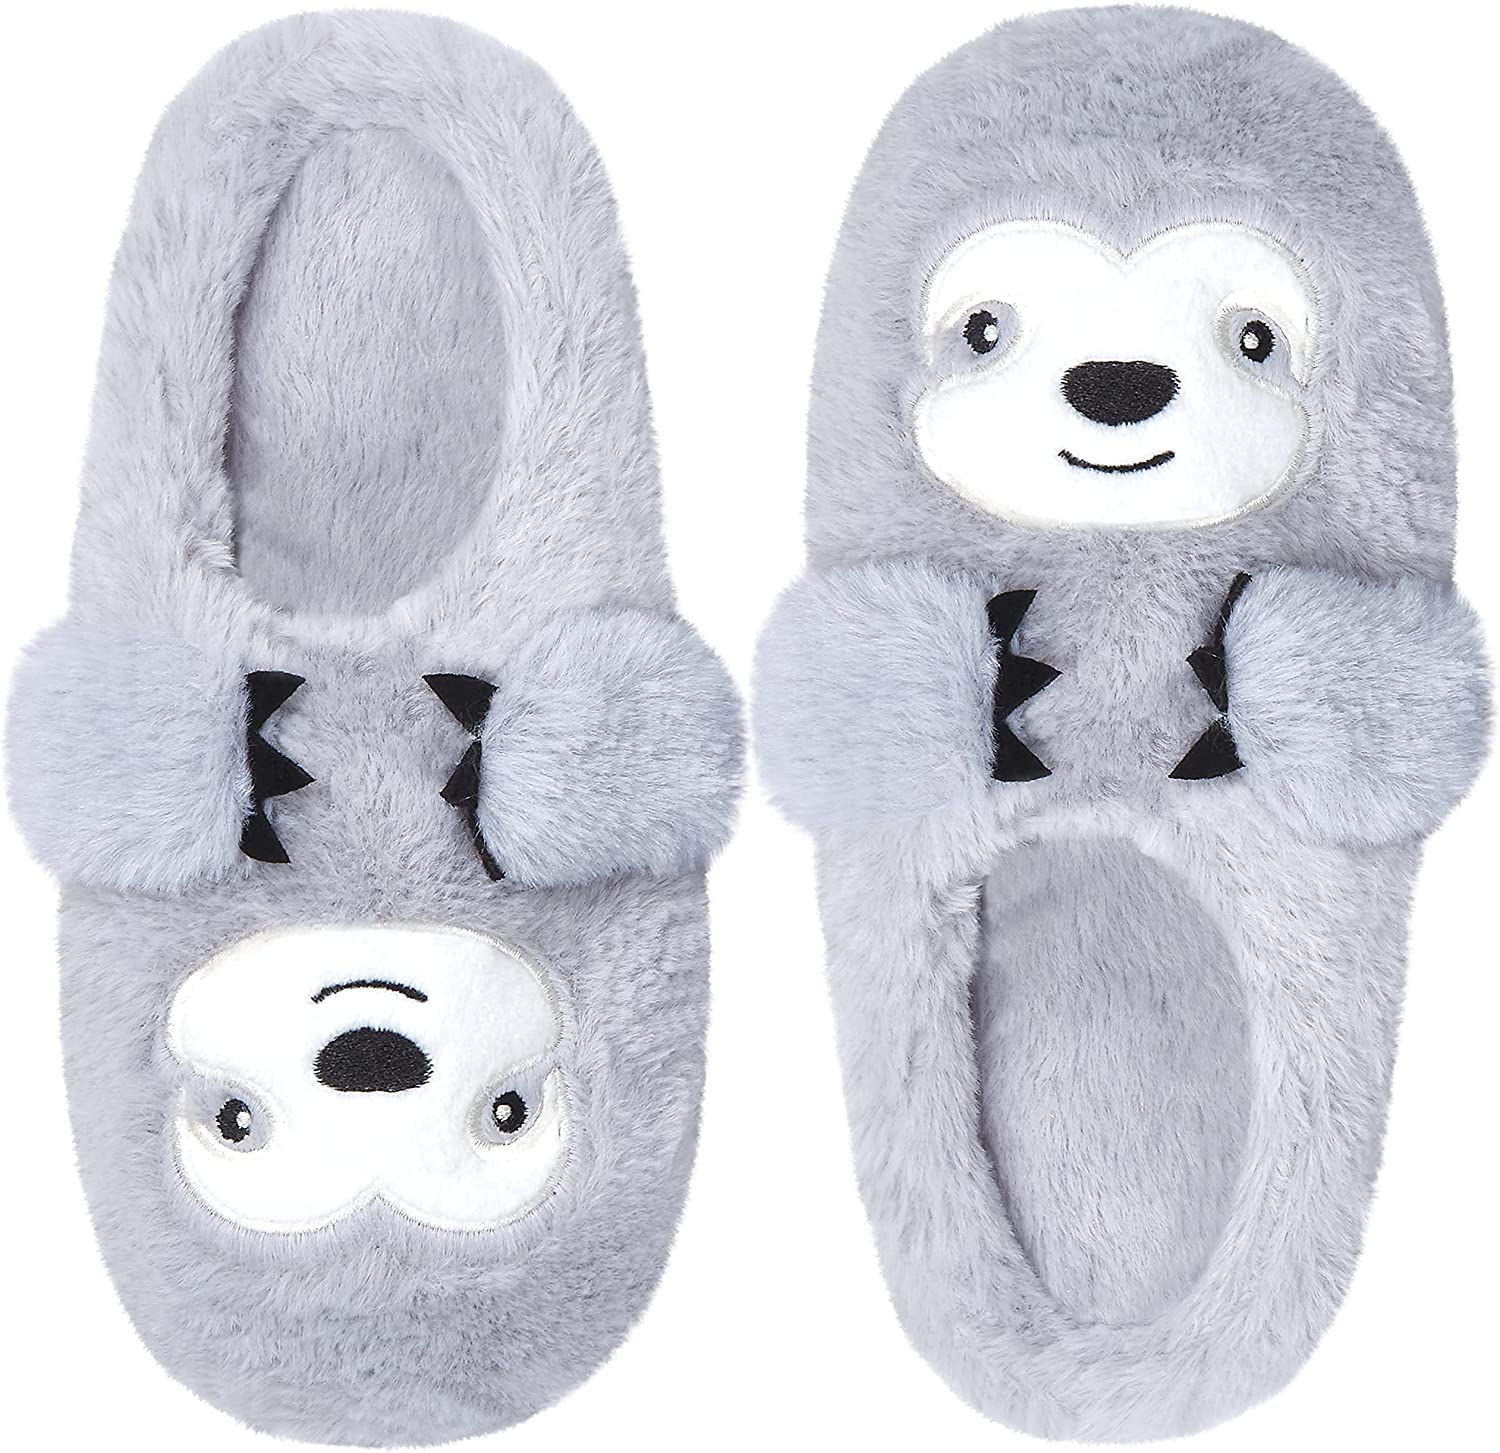 Cozy Memory Unique Cute Fluffy Plush Animal Bradypod Womens Slipper Memory Foam Insole Funny Adult Slip On Non-Skid Indoor Outdoor House Shoes Easter Christmas Slippers Gifts